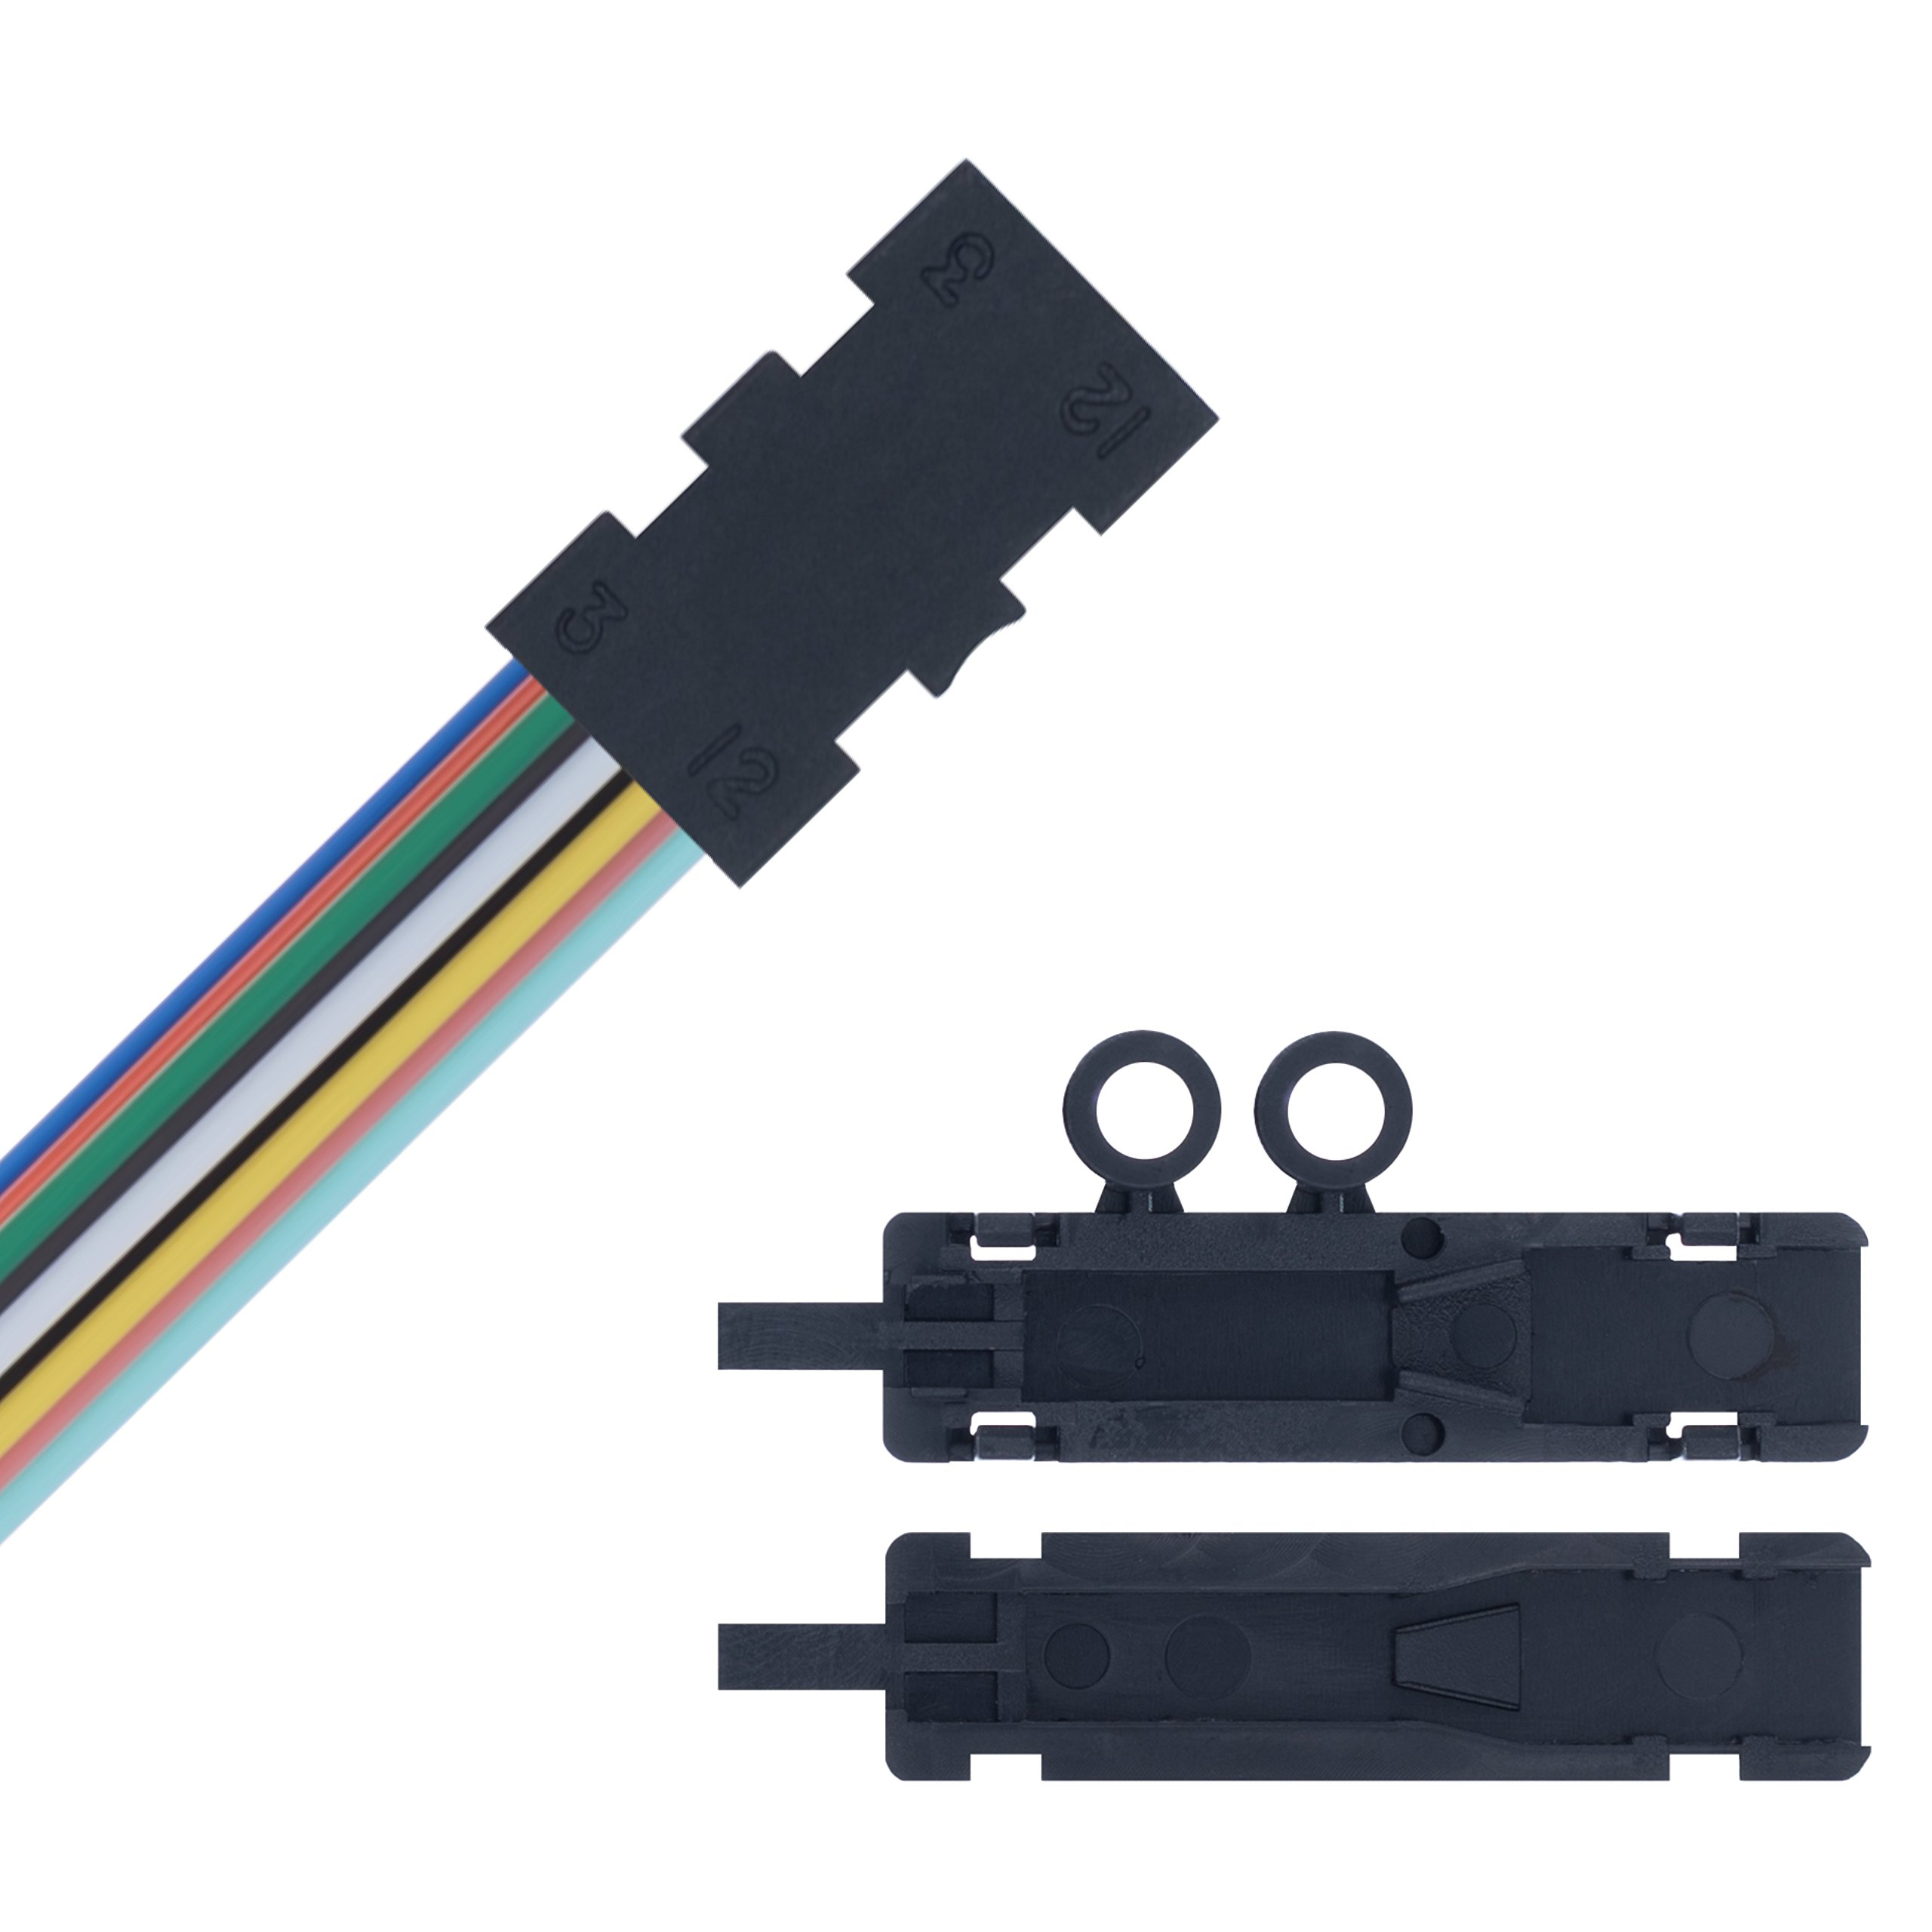 Fiber Optics Fan Out Kit - 12 Strand/Ribbon for Loose Tube Bulk Optical Fiber - 48 Inches Tubing - Beyondtech